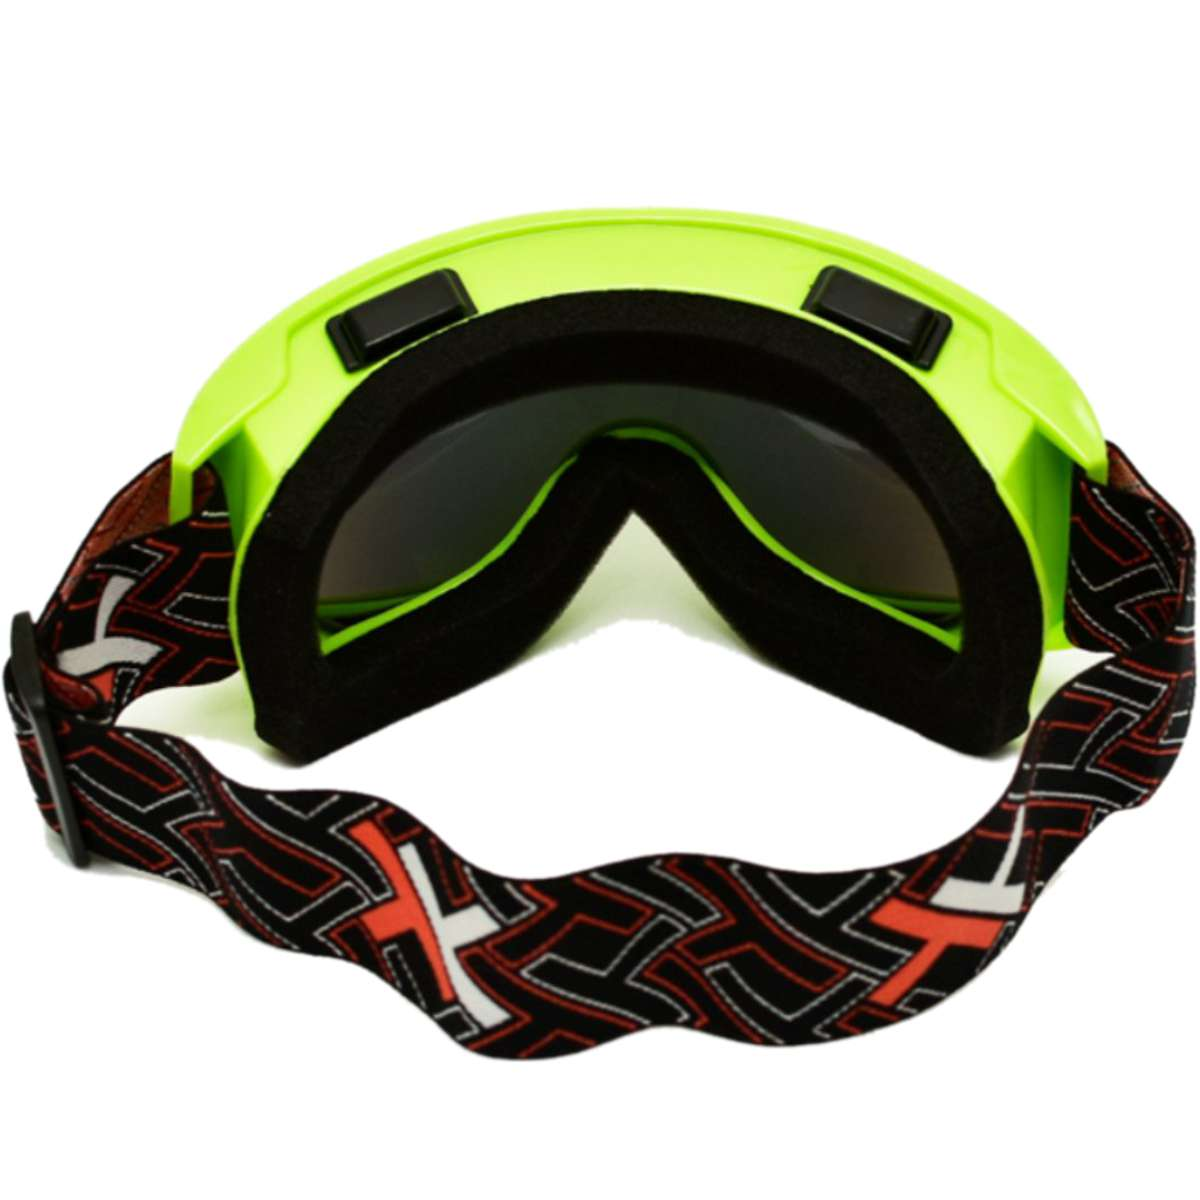 OCULOS CROSS OFF-ROAD MATTOS RACING MX LENTE ESPELHADA AMARELO FLUOR